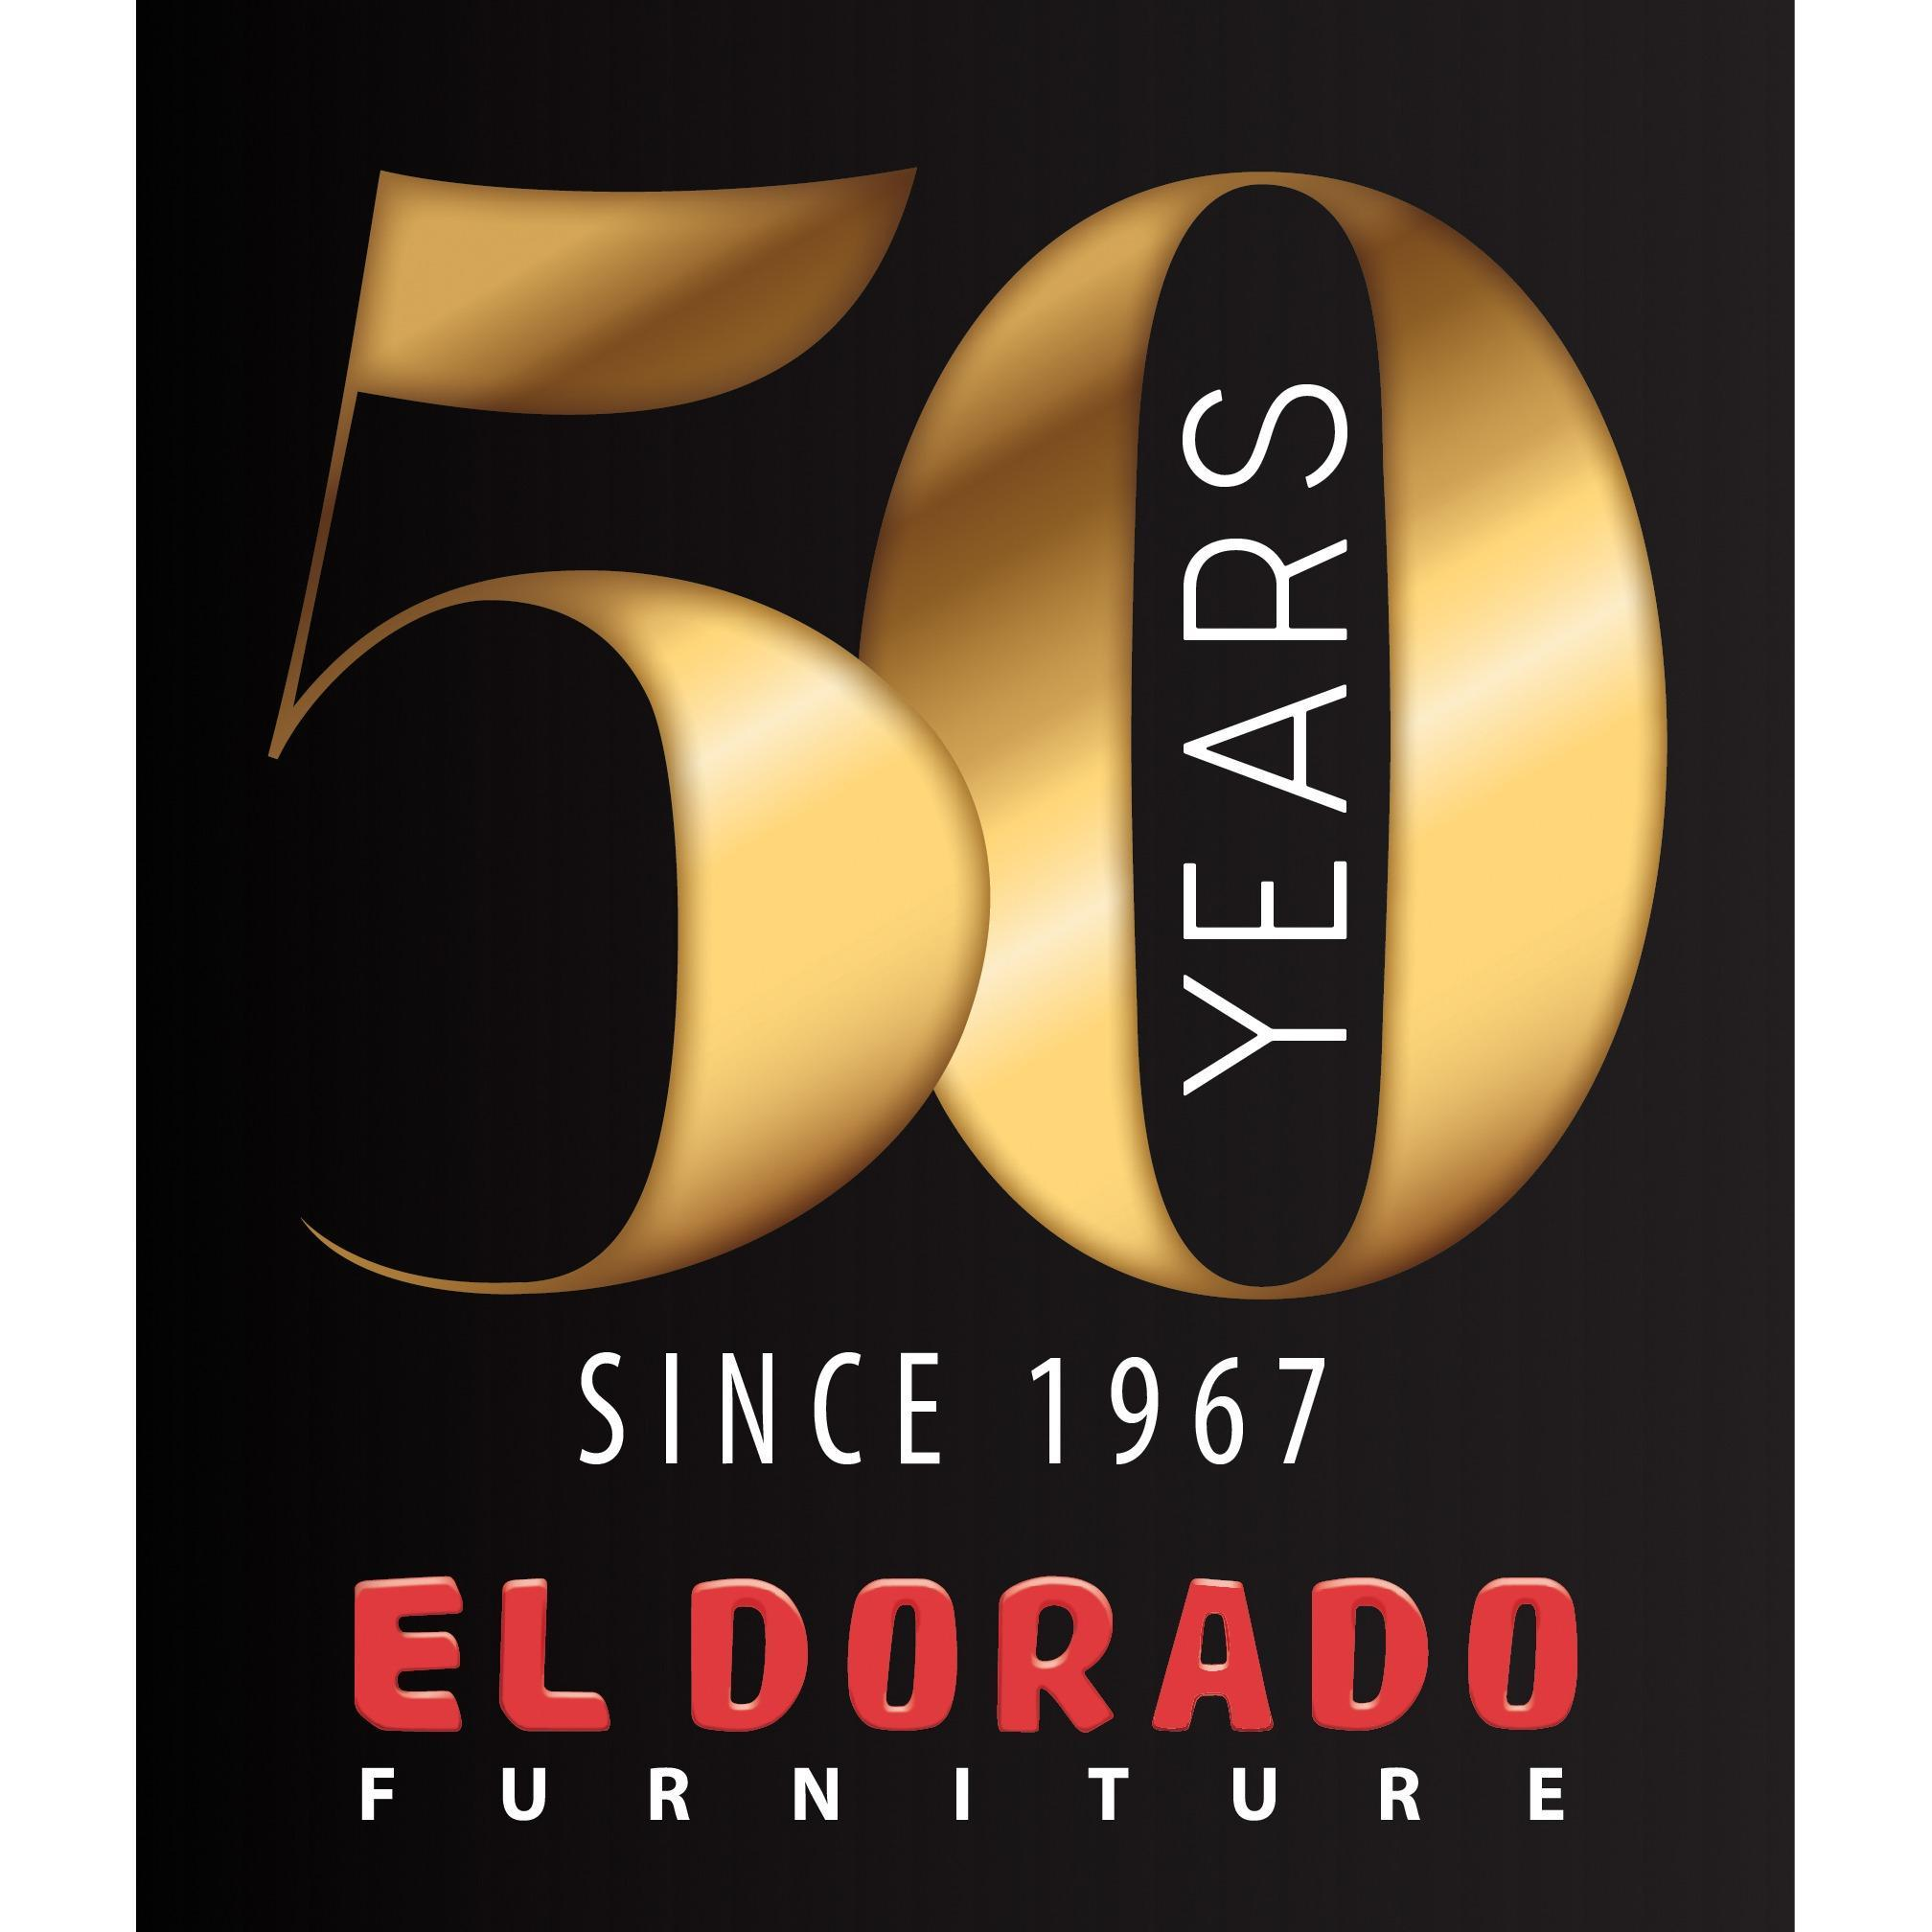 El Dorado Furniture - Plantation Store